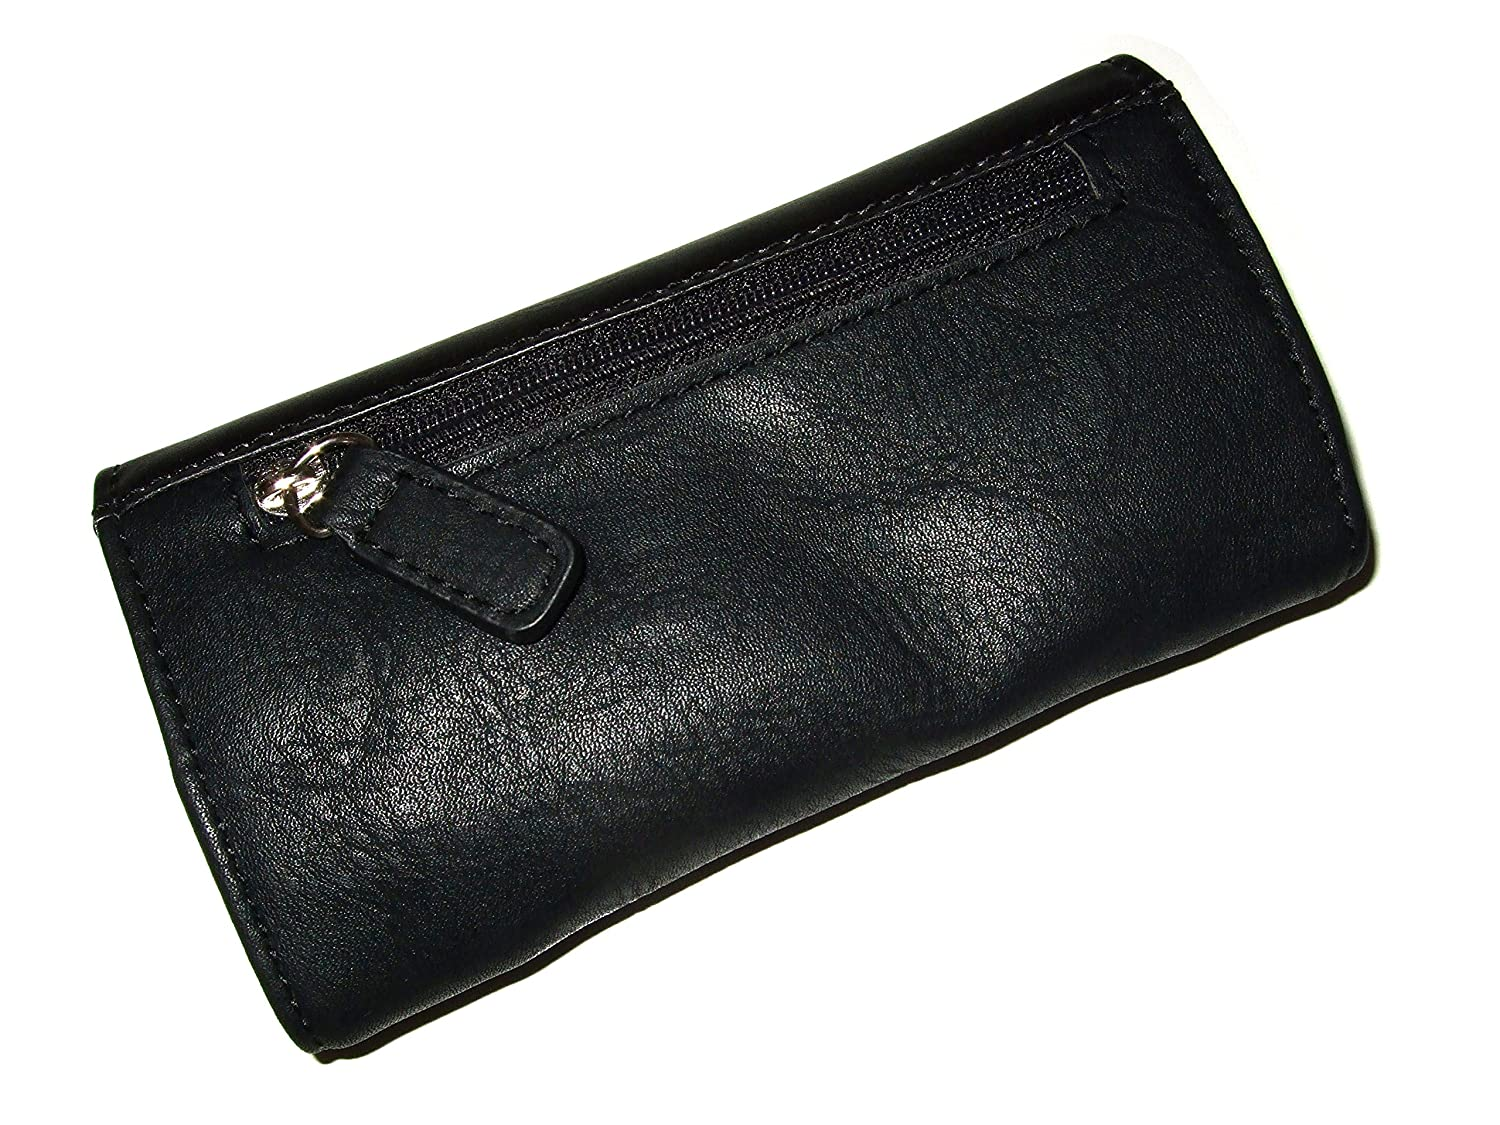 High Quality Faux Leather Tobacco Pouch Muhhamad Ali